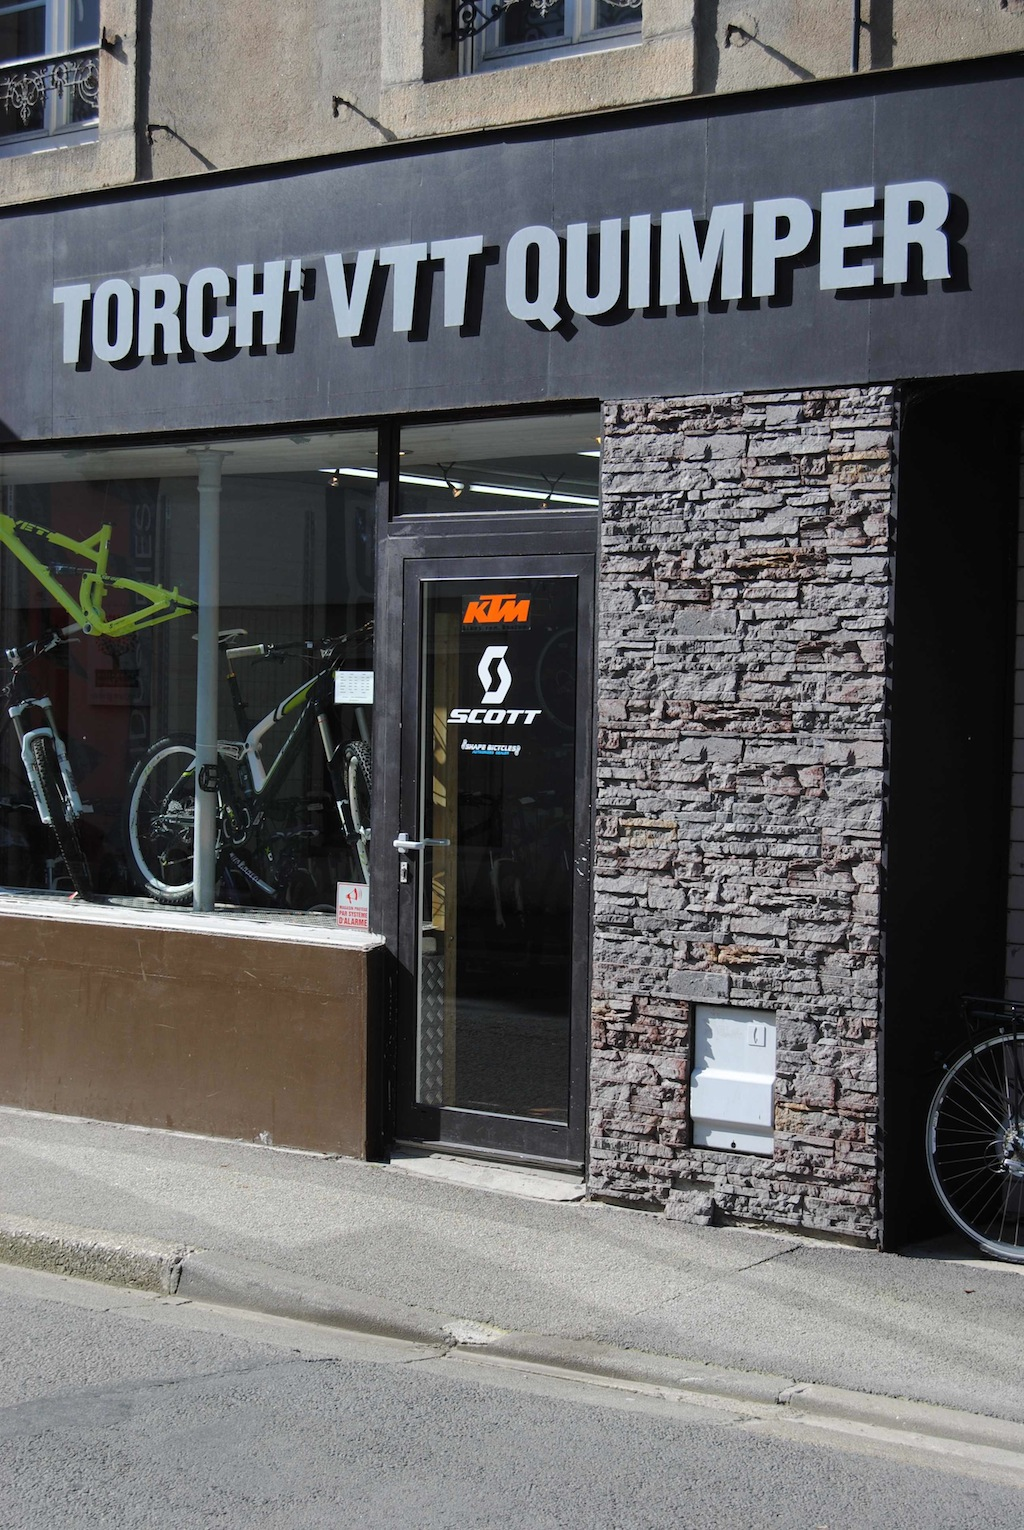 Shop Torch'VTT à Quimper